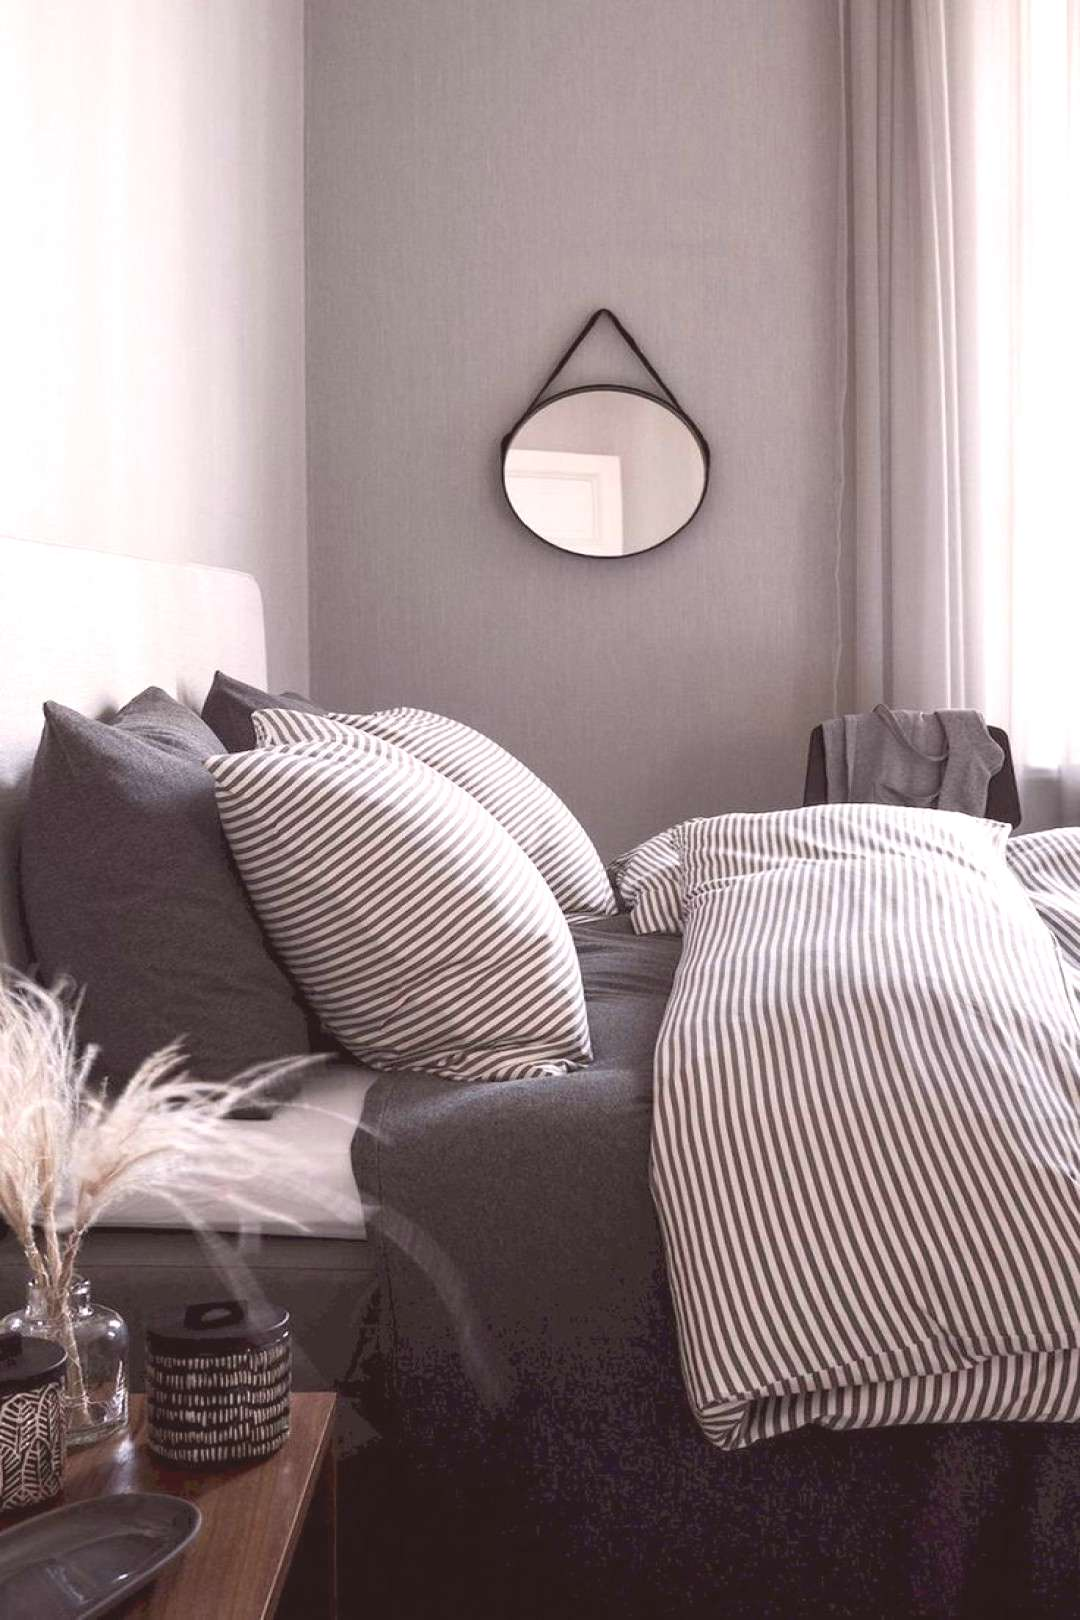 71 Timeless black and white bedrooms that can prevail - Diyselberm ... - 71 Timeless black and whi